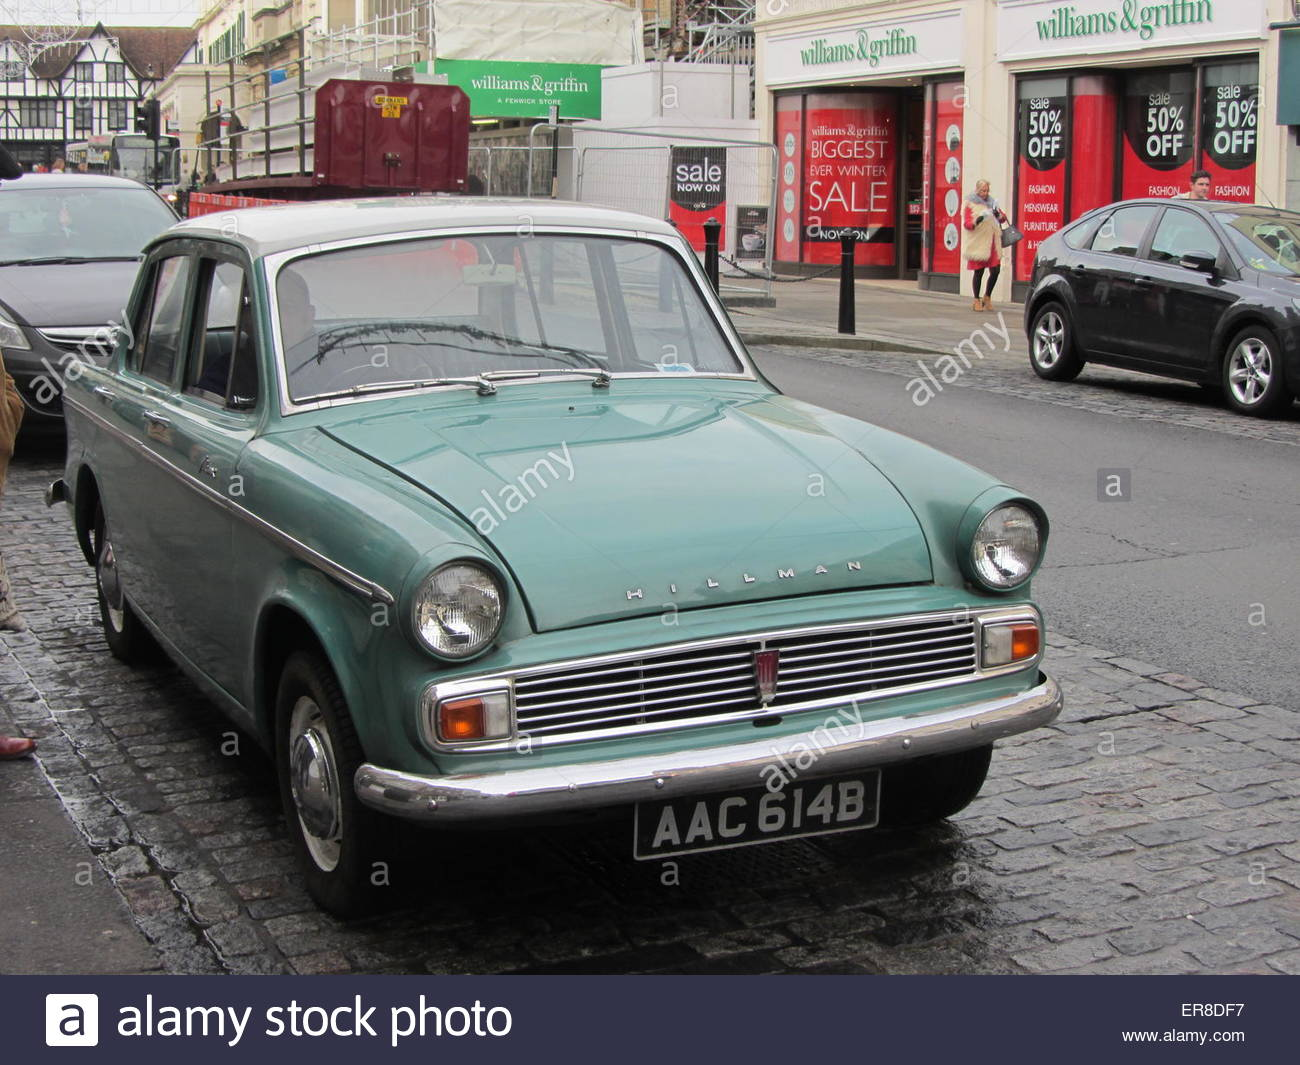 hillman car stockfotos hillman car bilder alamy. Black Bedroom Furniture Sets. Home Design Ideas